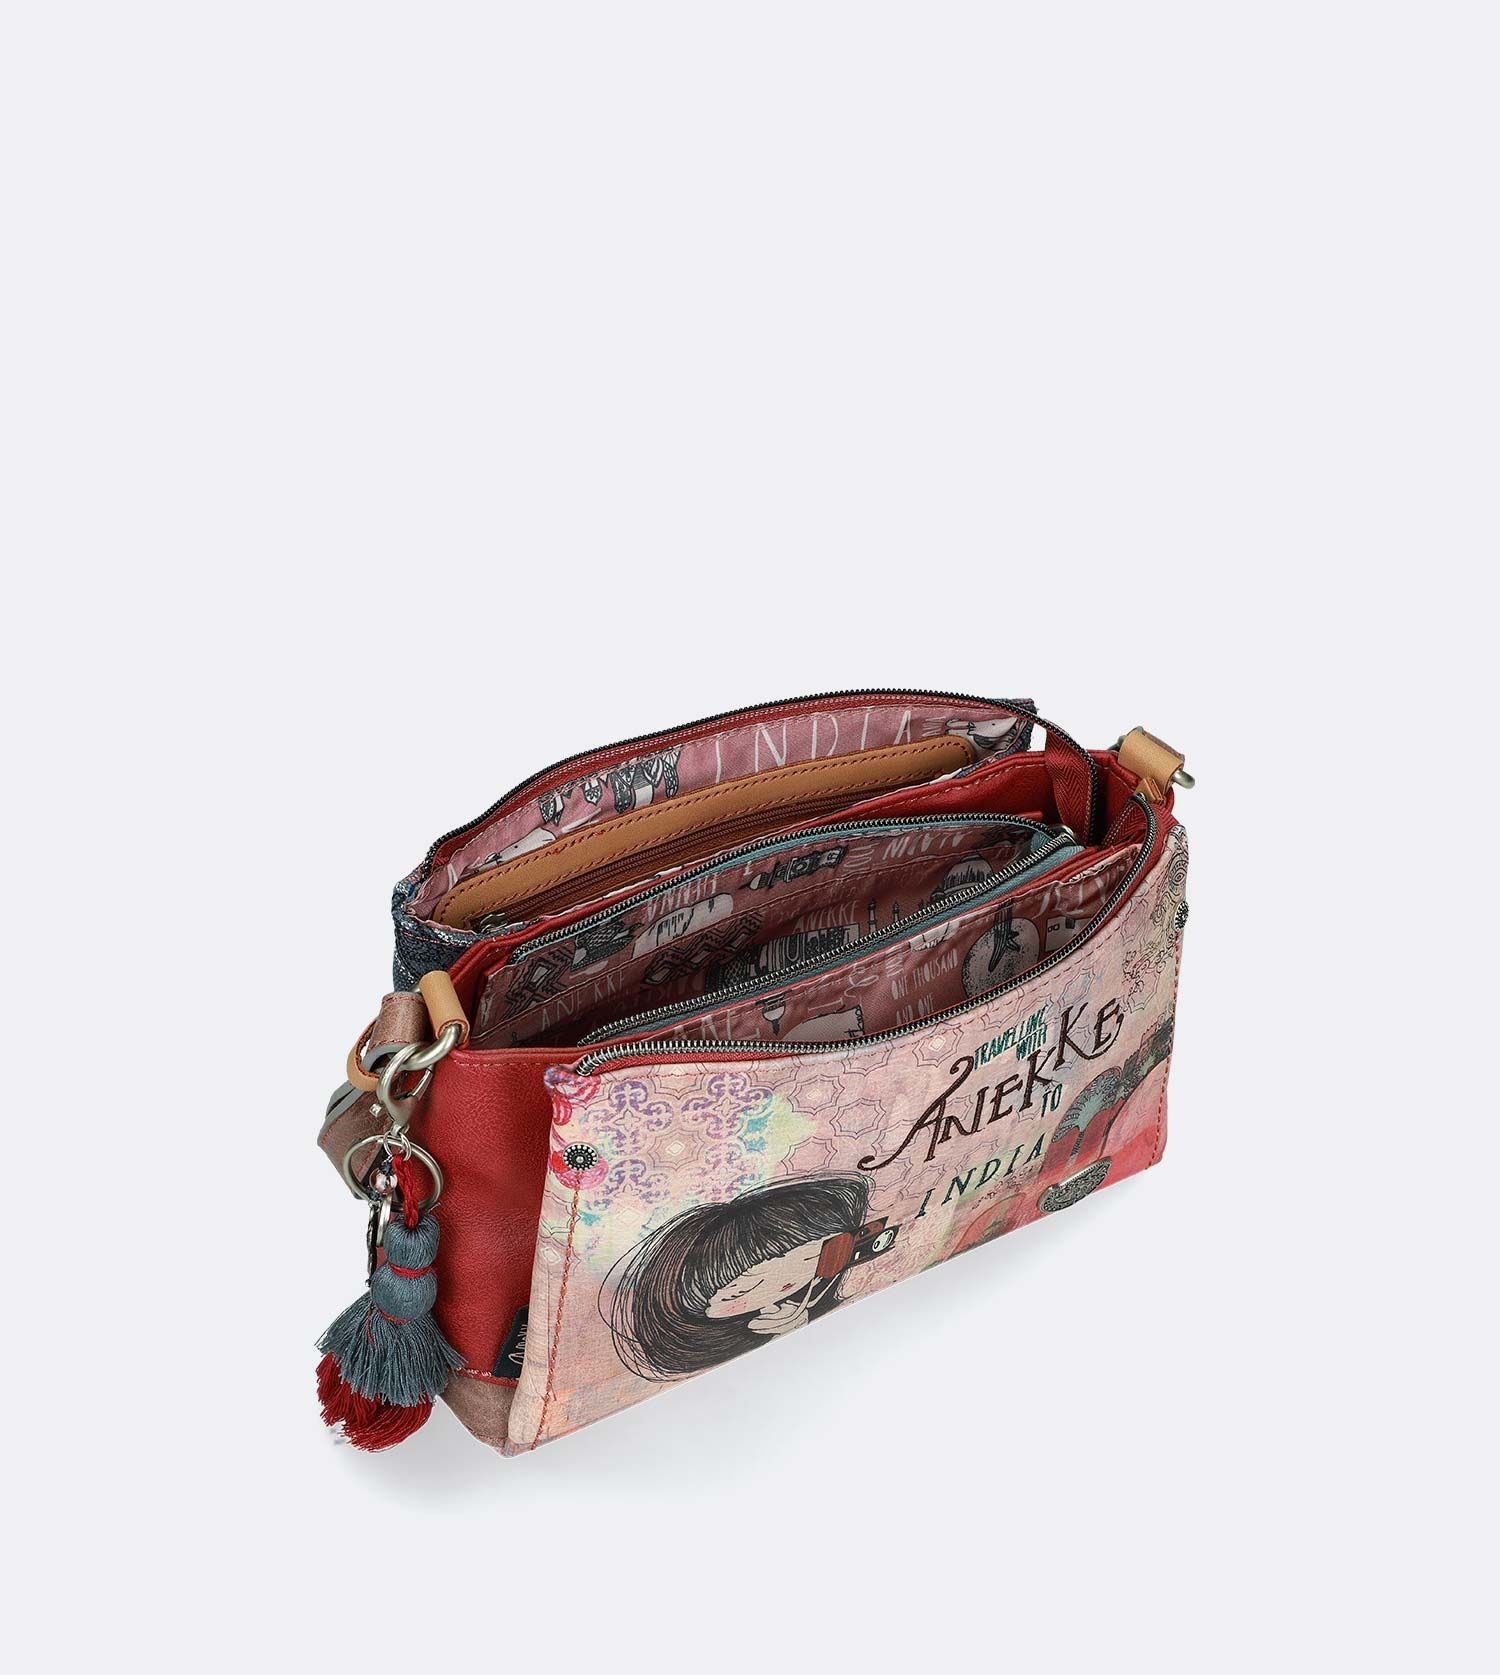 Anekke India - Crossbody kabelka 28872-40